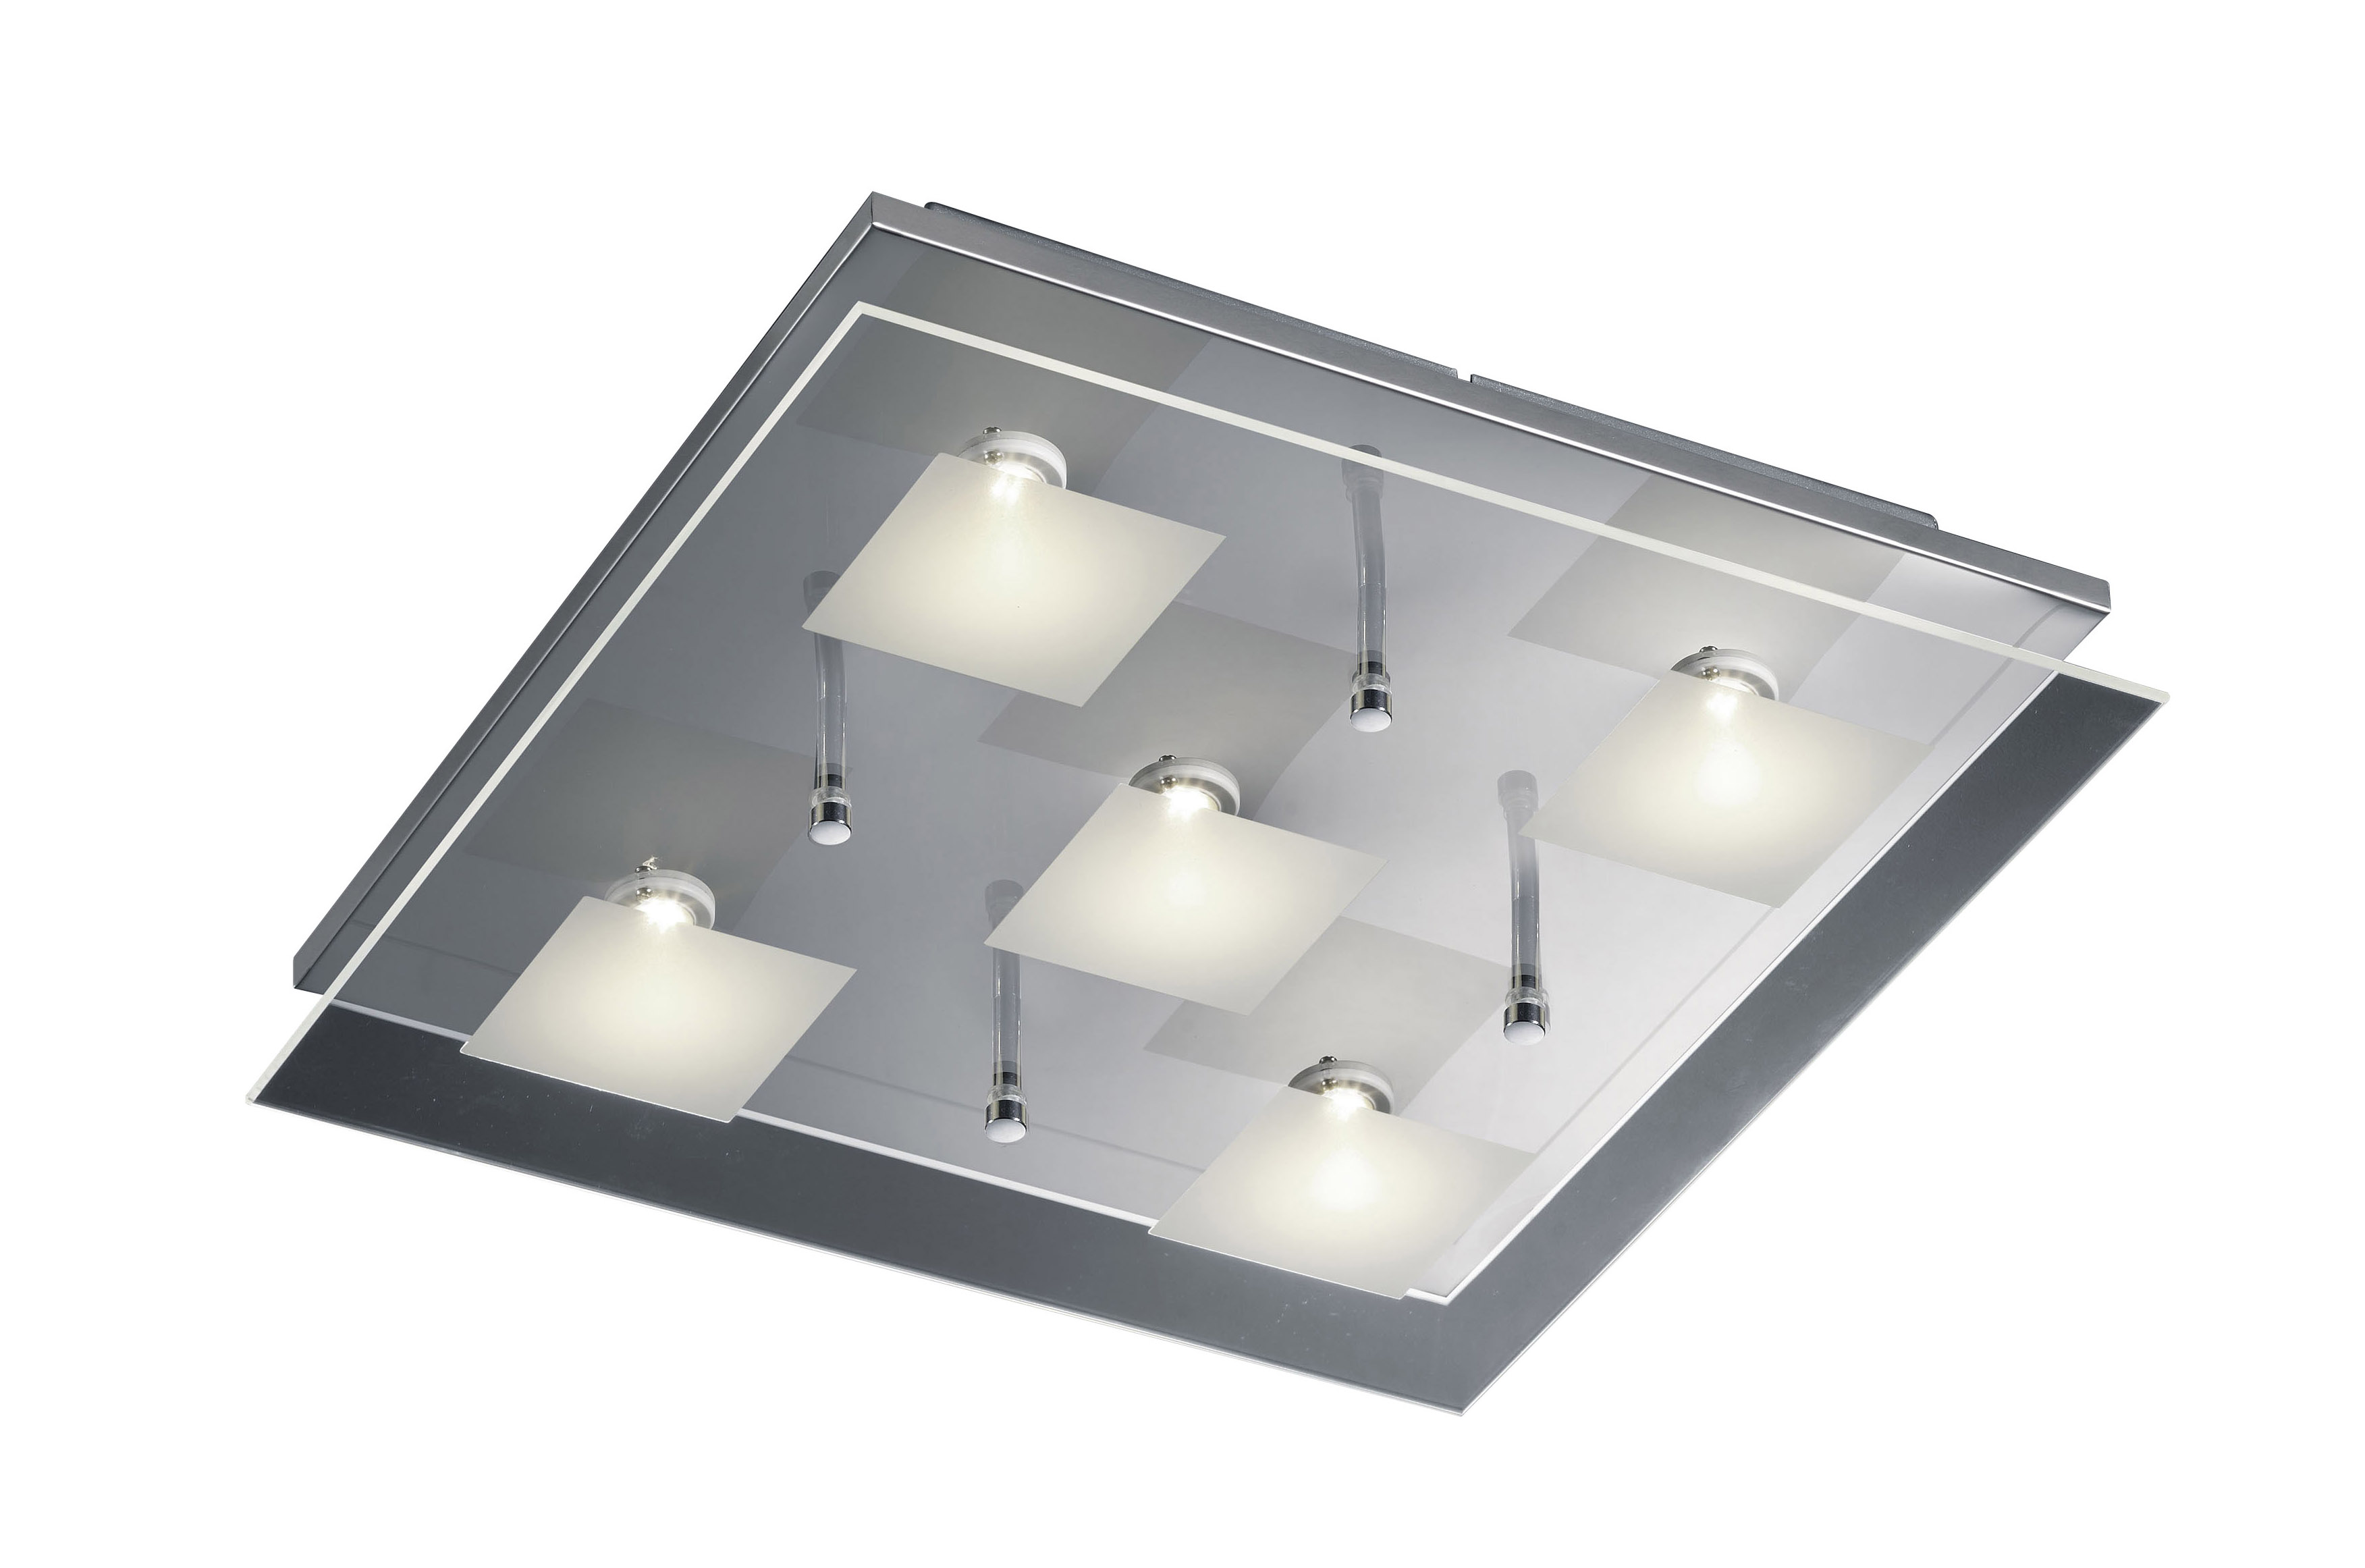 Square led glass ceiling light leyton lighting square led glass ceiling light aloadofball Choice Image